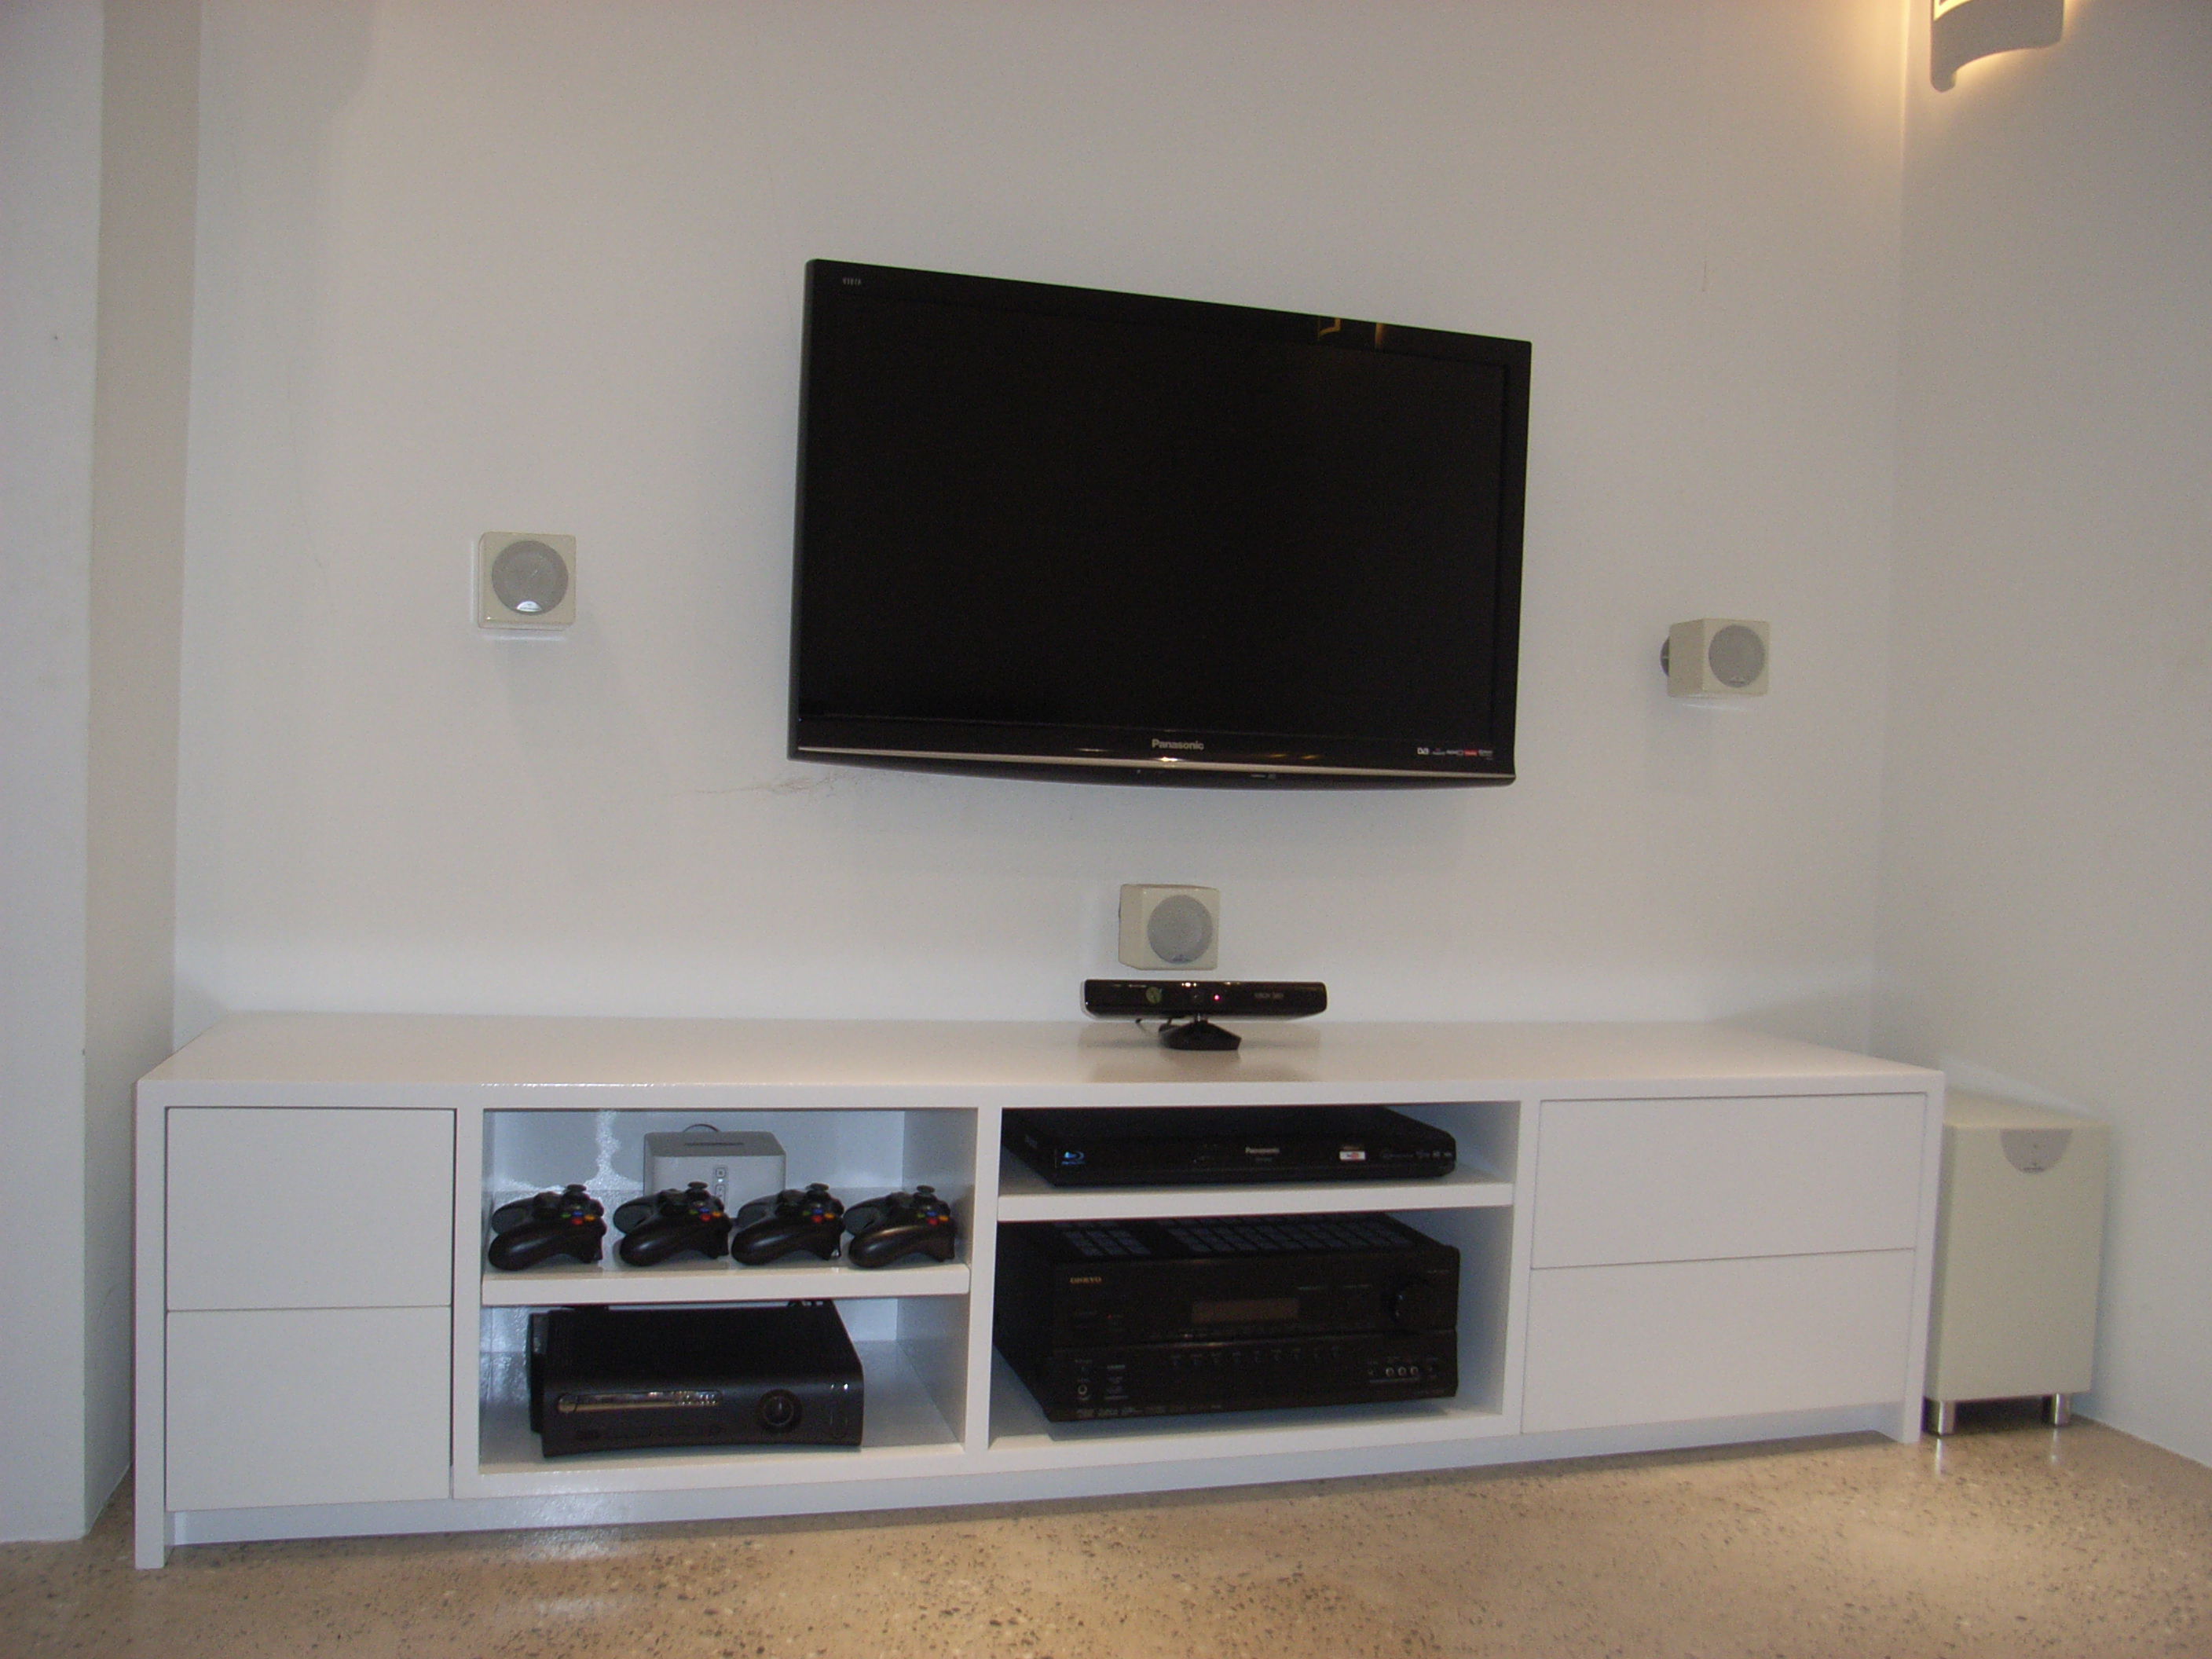 bespoke TV unit with DVDs and Blu Rays in push to open drawers